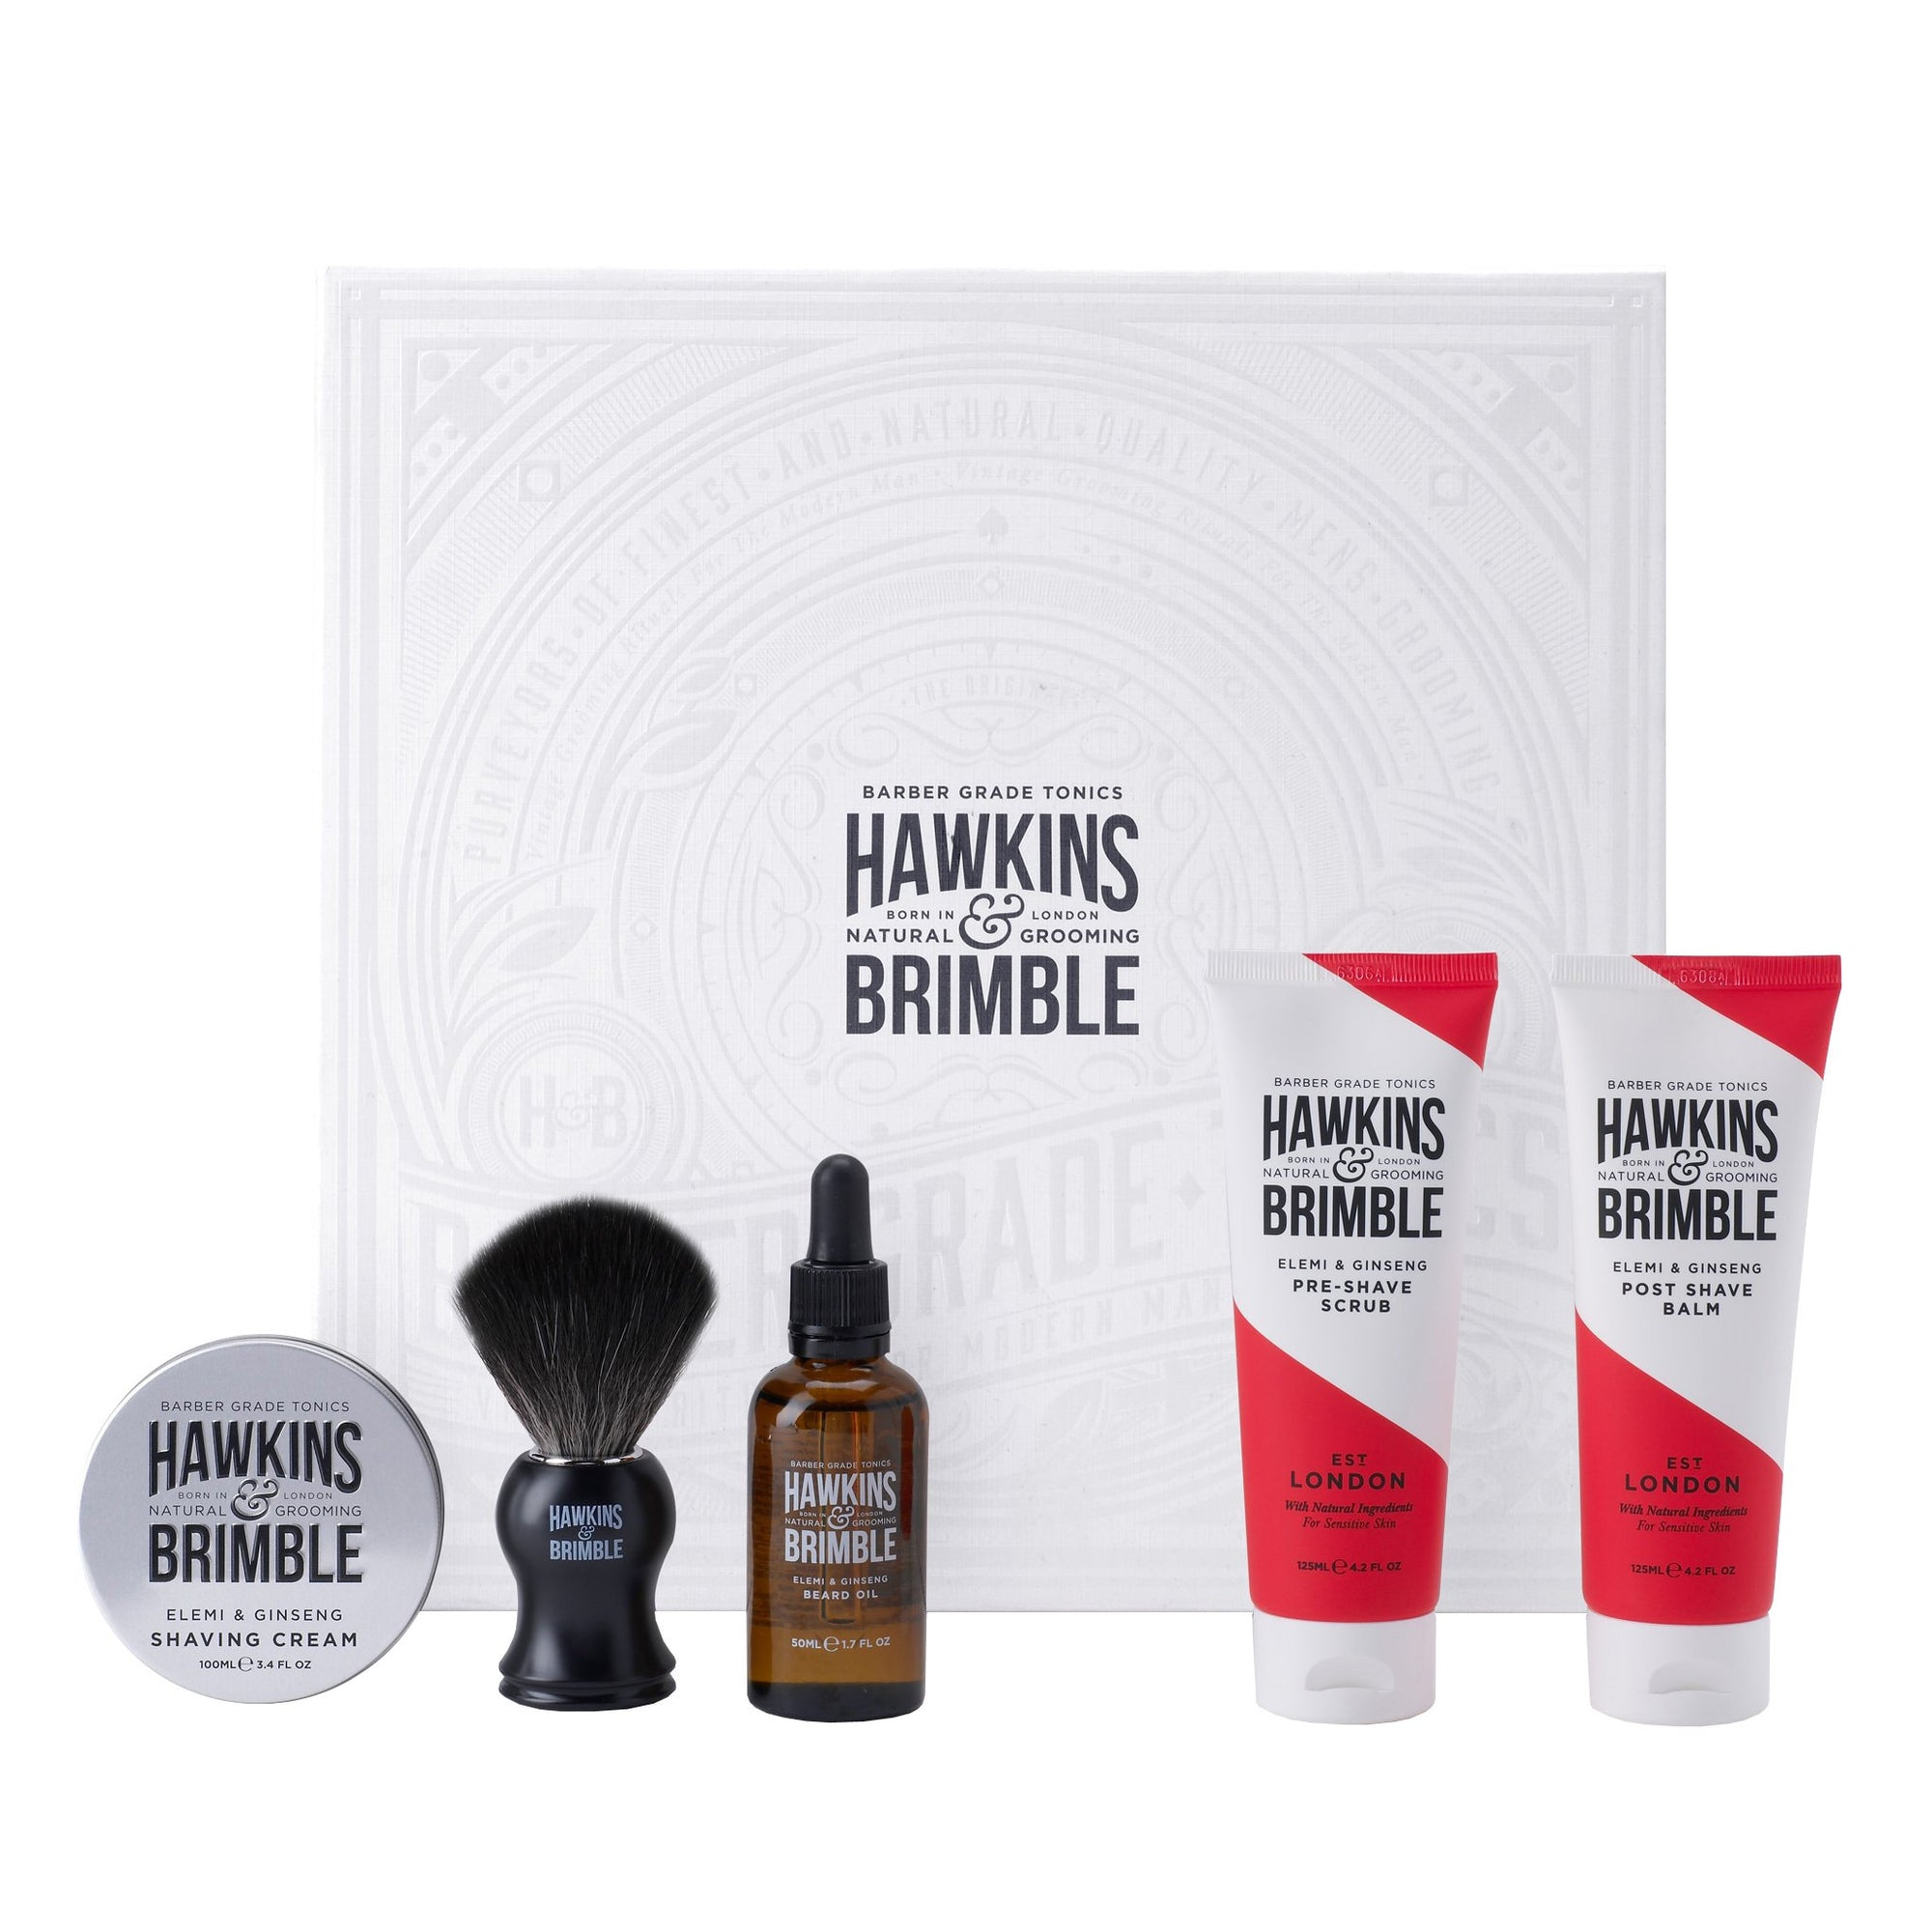 Hawkins and Brimble Premium Male Grooming